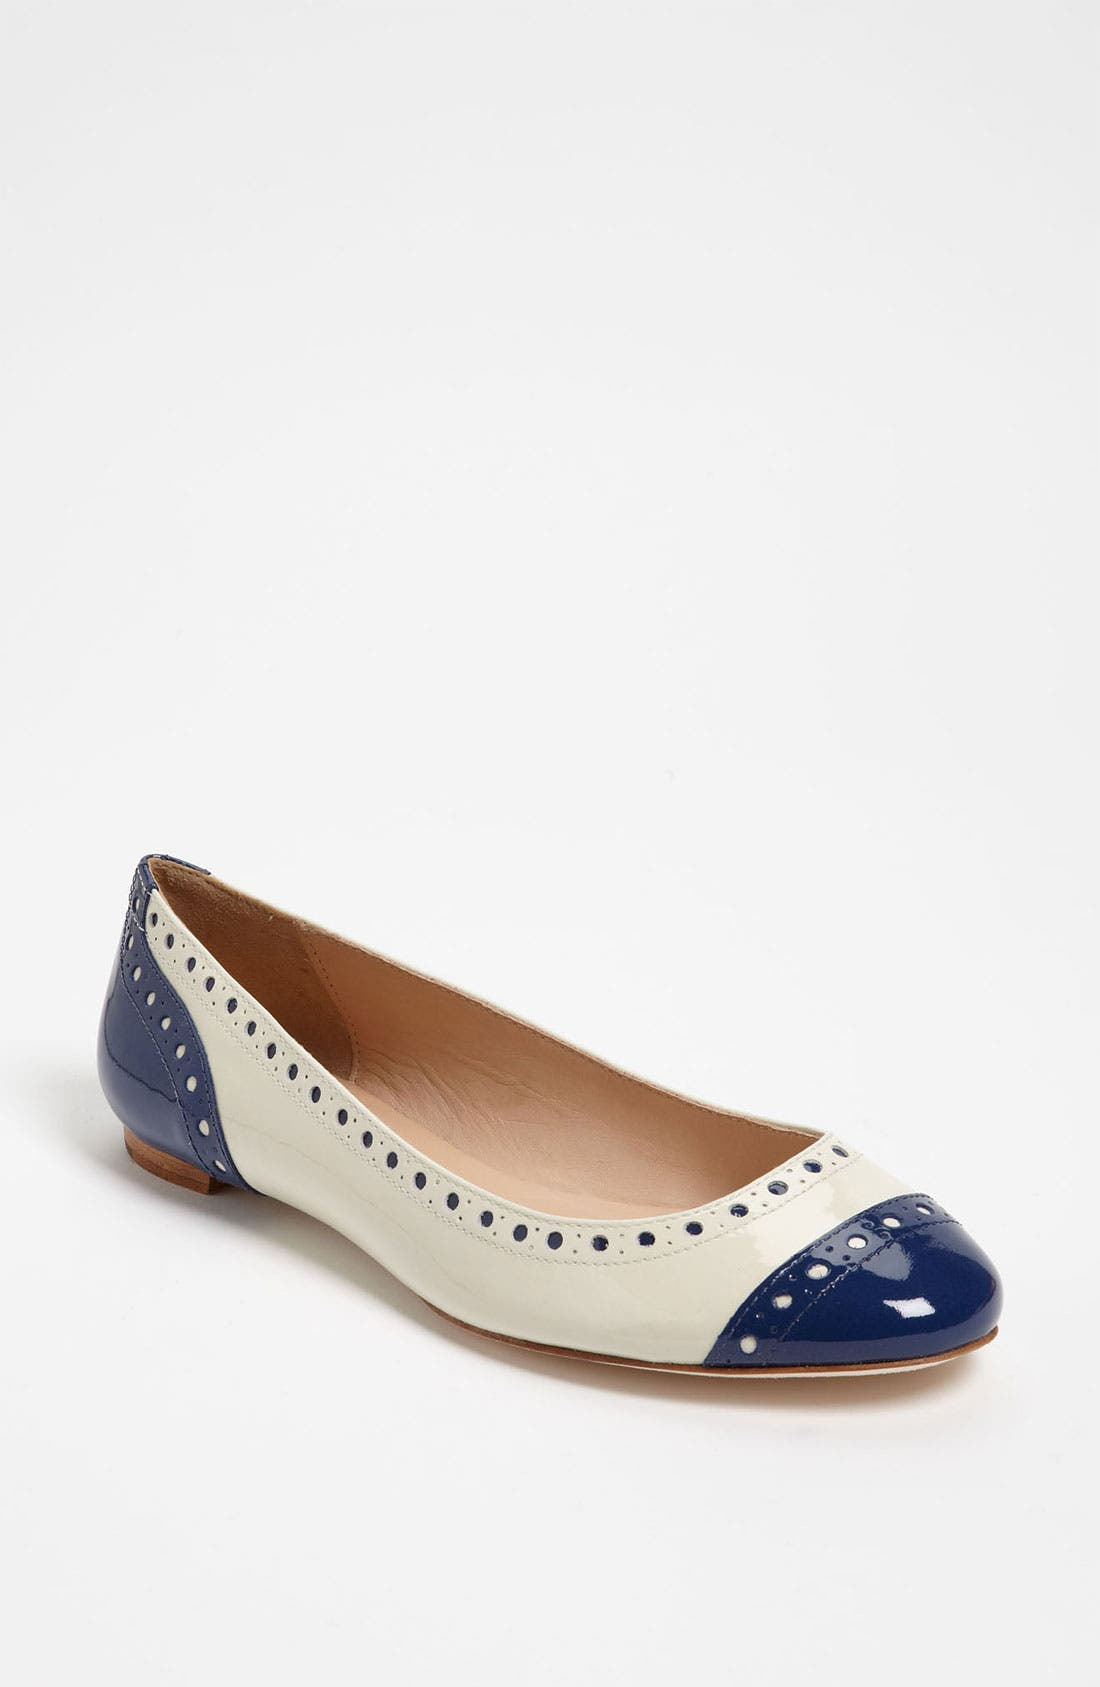 Main Image - kate spade new york 'tuttie' flat